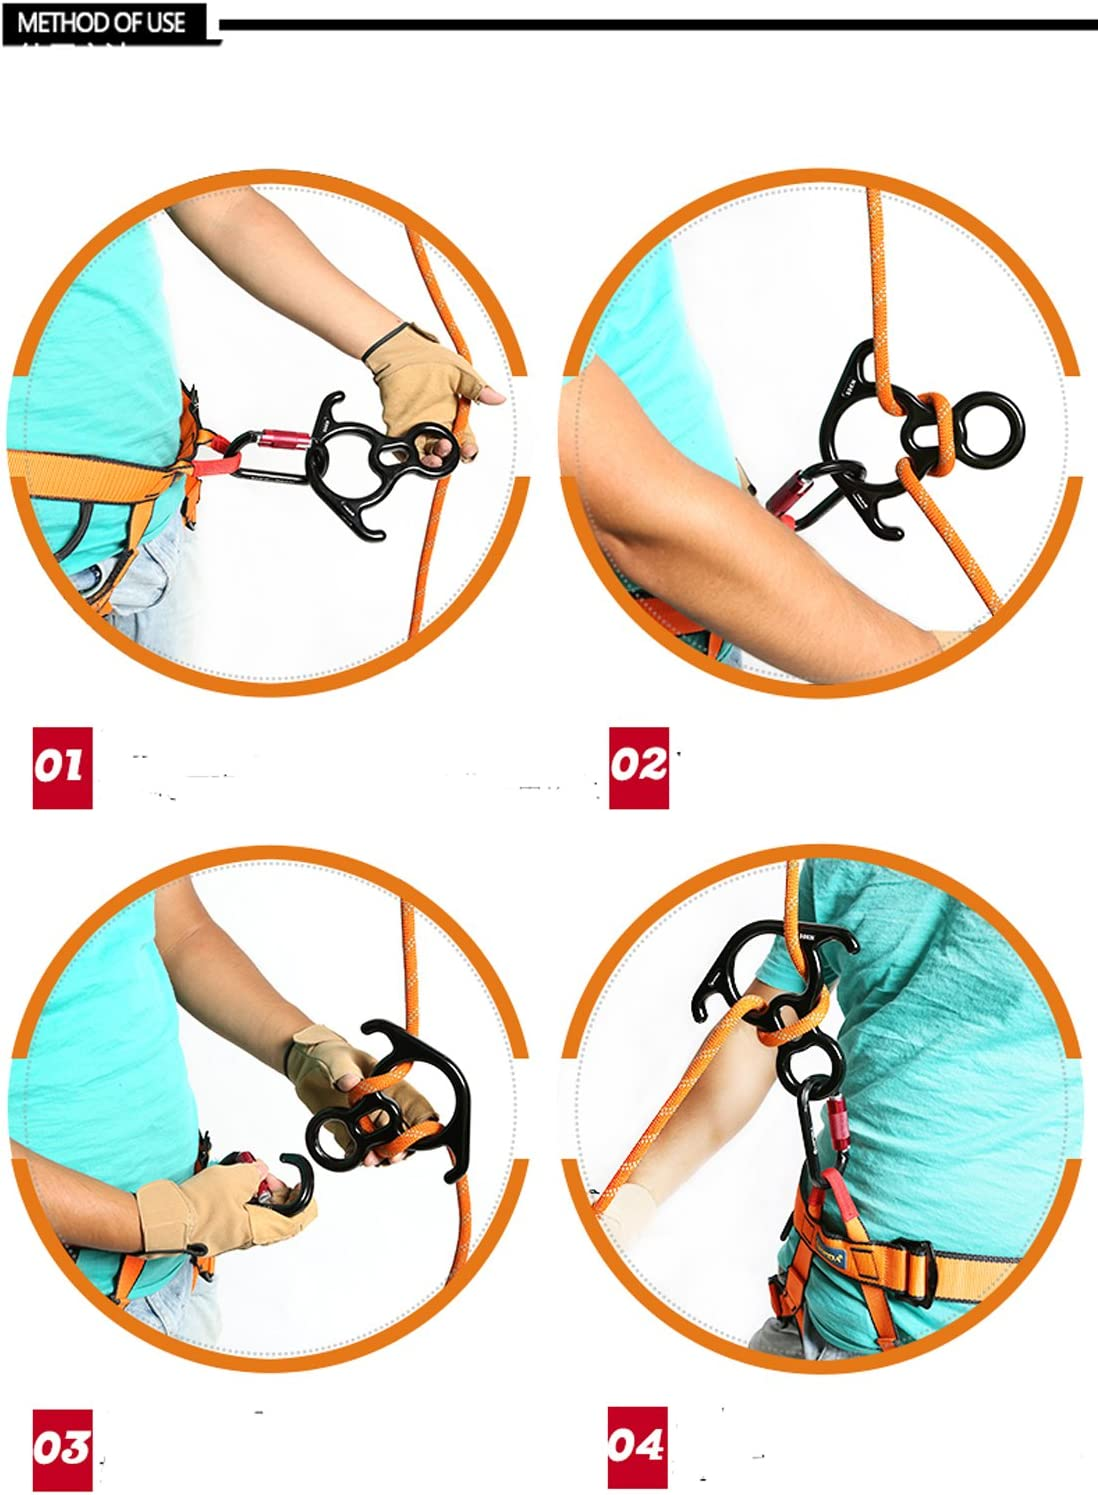 HI SUYI 35KN Terminal Rescue Figure 8 Descender with Bent-Ear Rappelling Gear Belaying Device for Outdoor Rock Climbing Blue